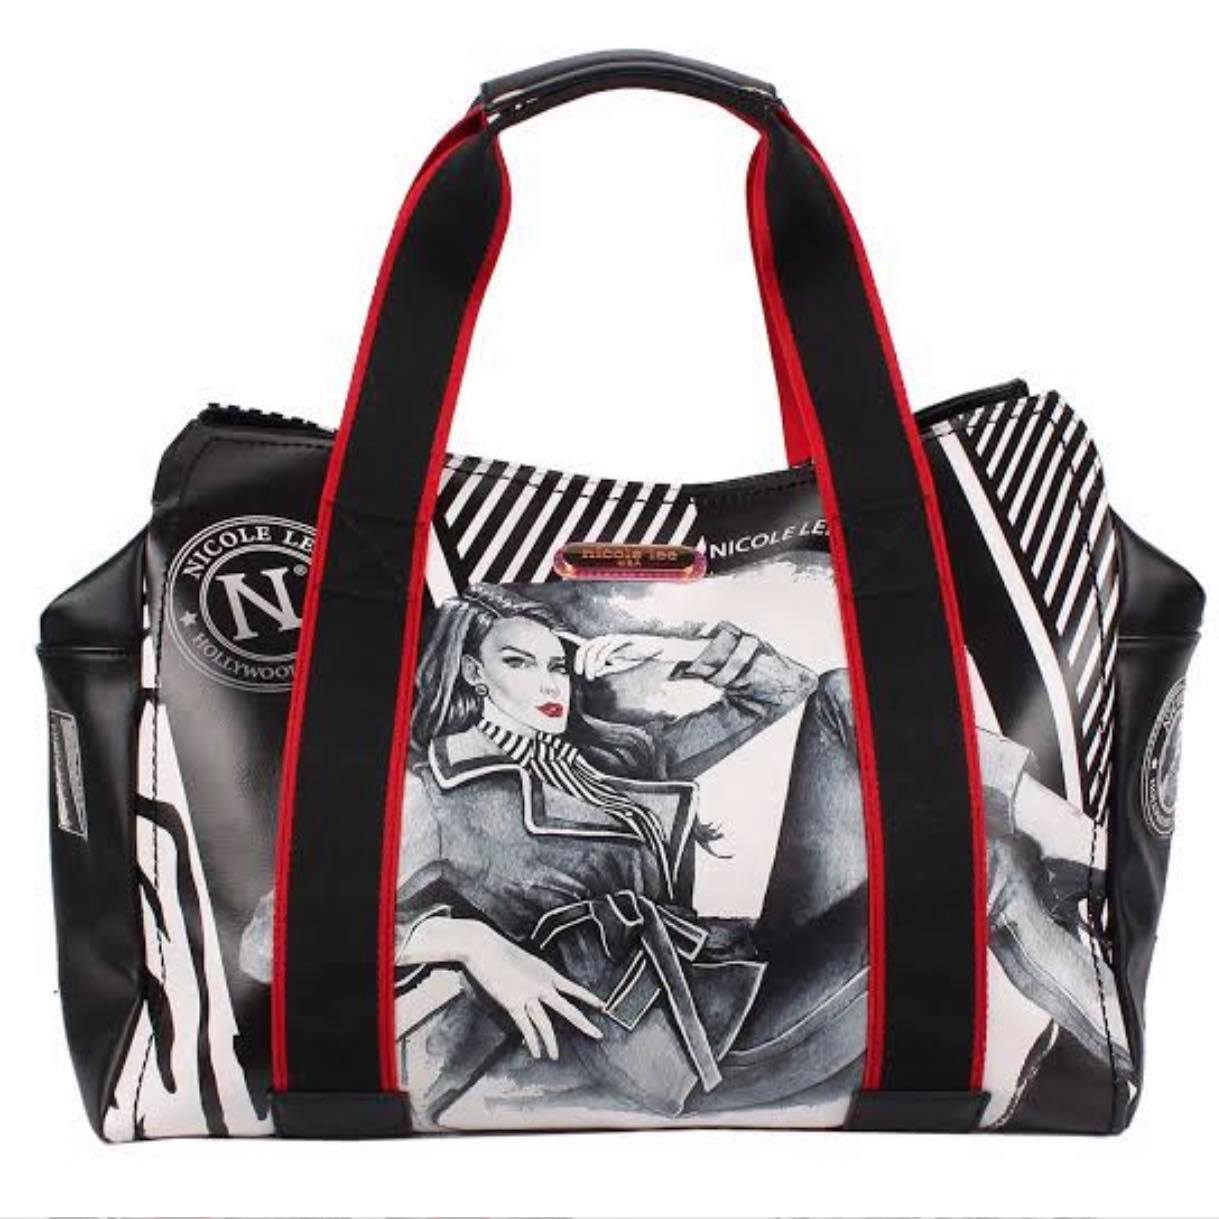 "Nicole Lee ""Maxine Denies Comfort Zone"" Printed Duffle Bag"